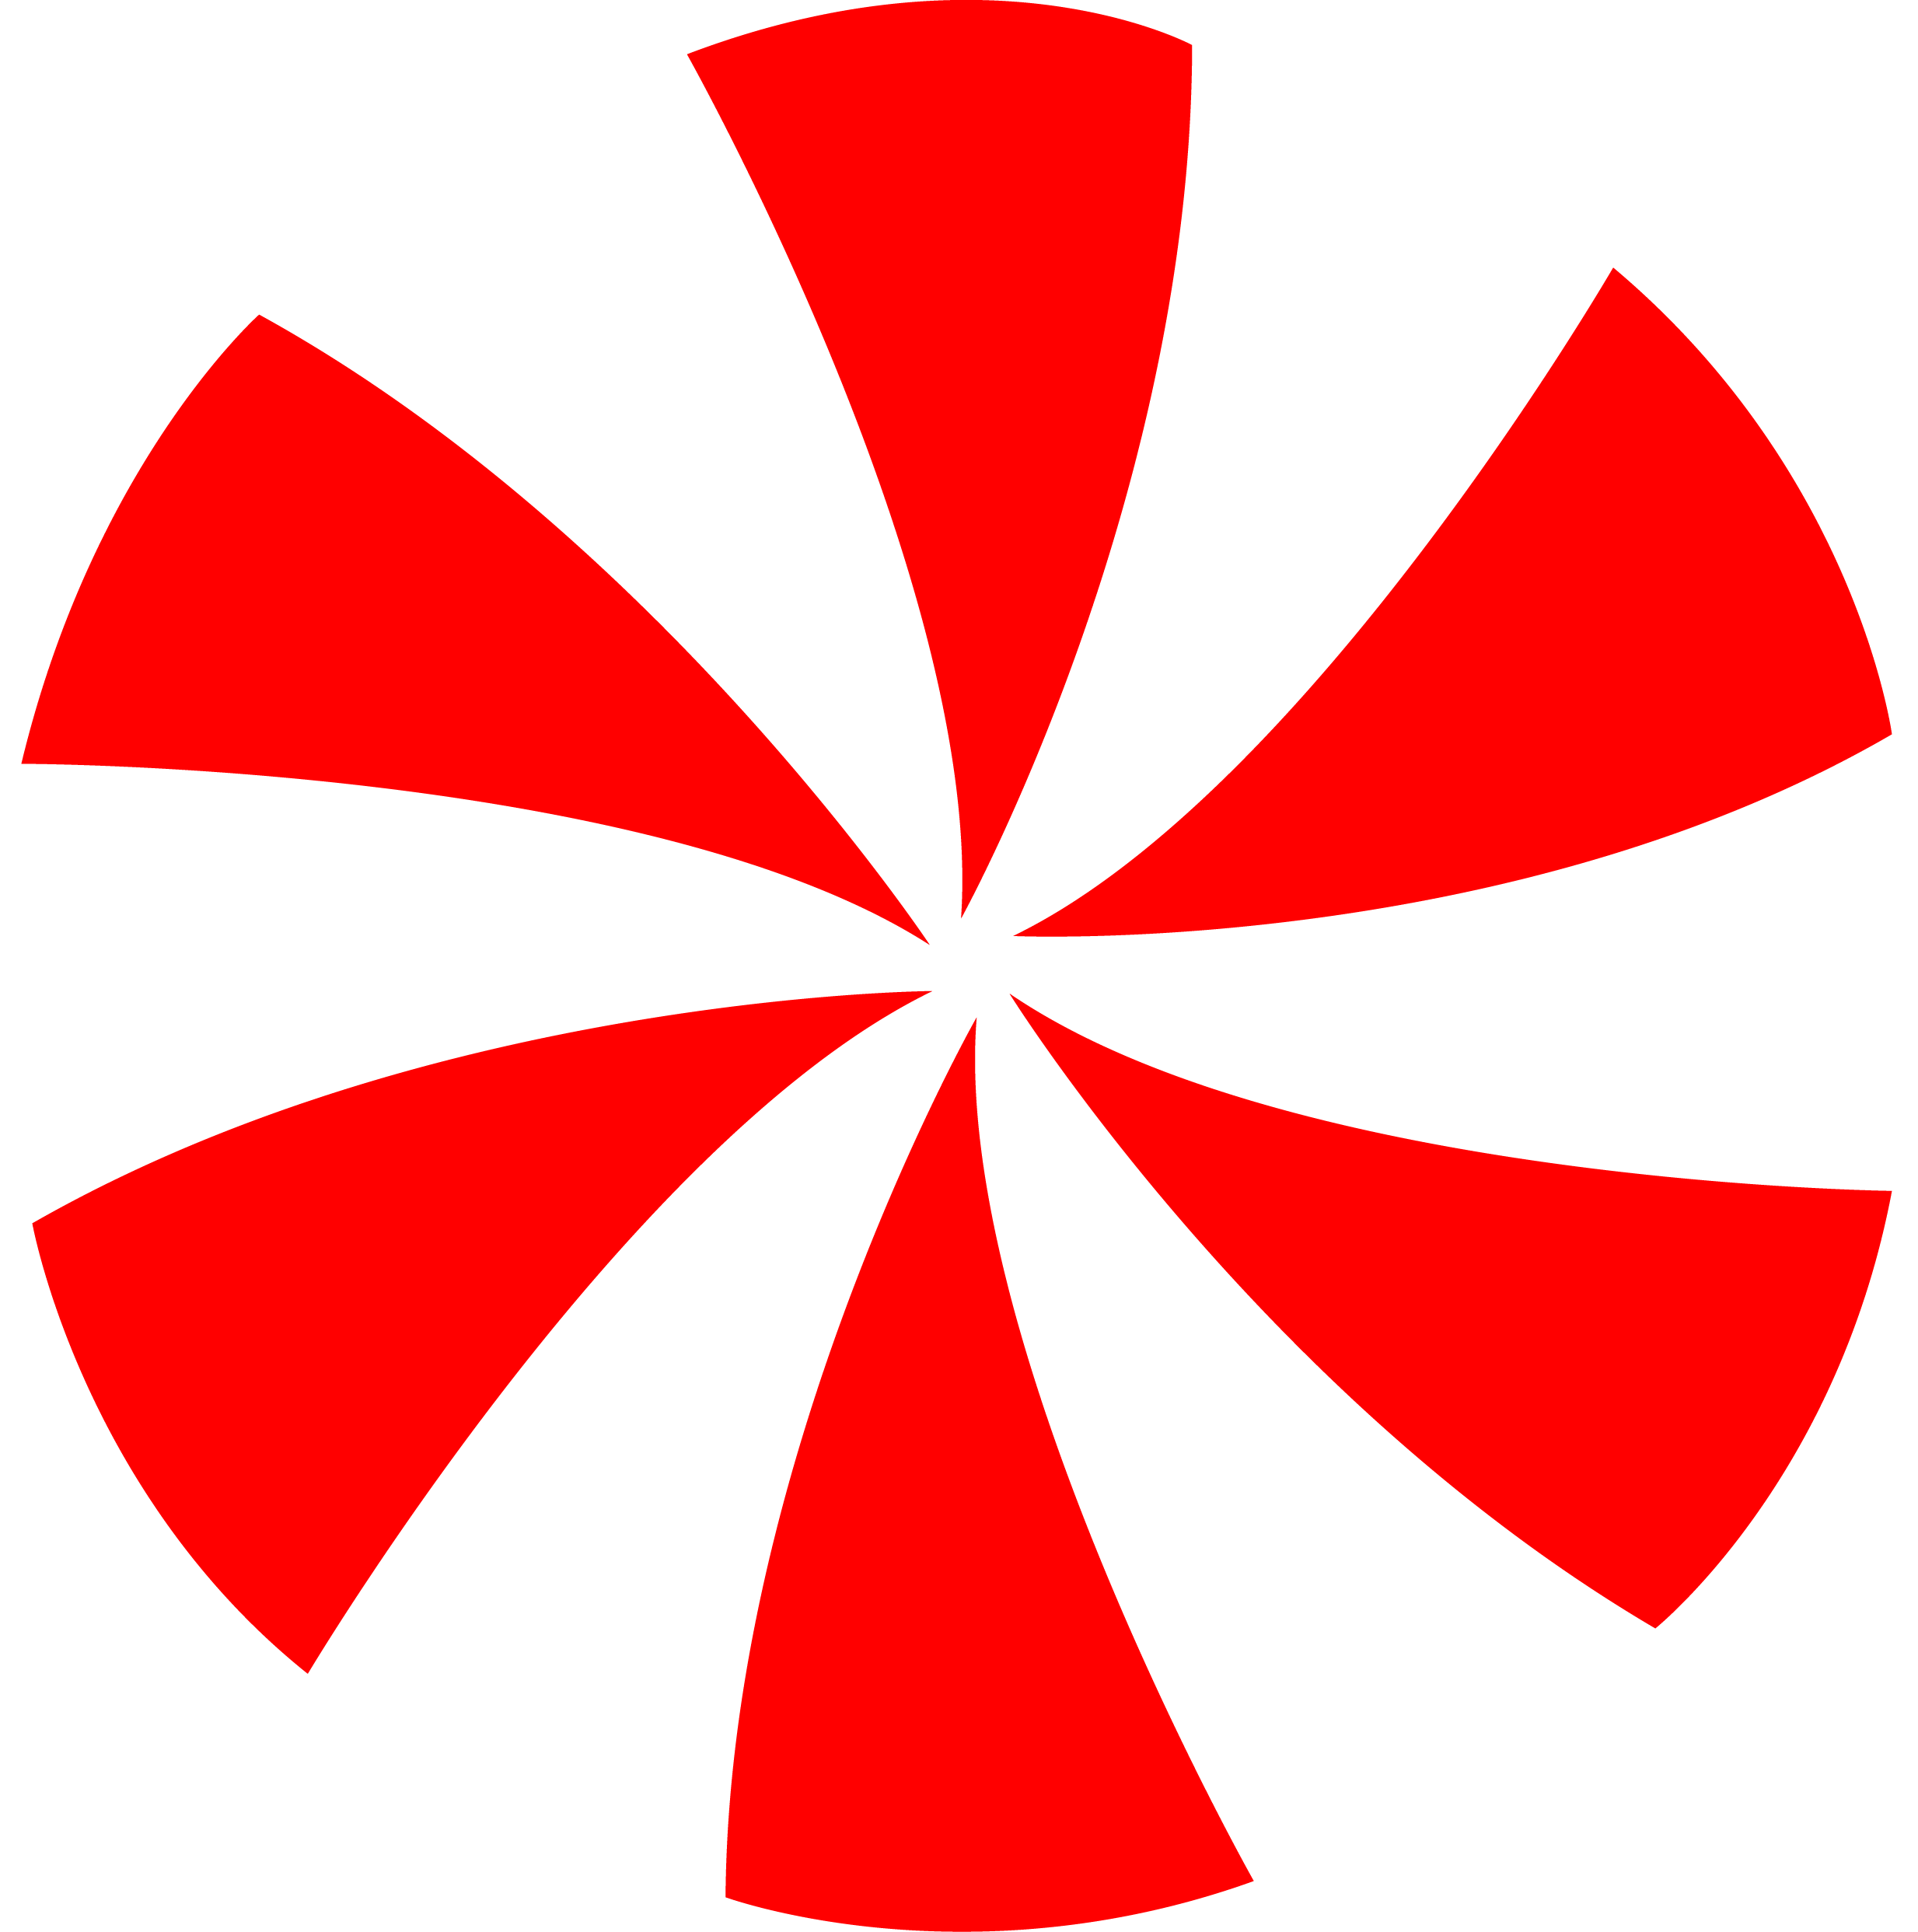 Sweet clipart swirl. Red and white peppermint